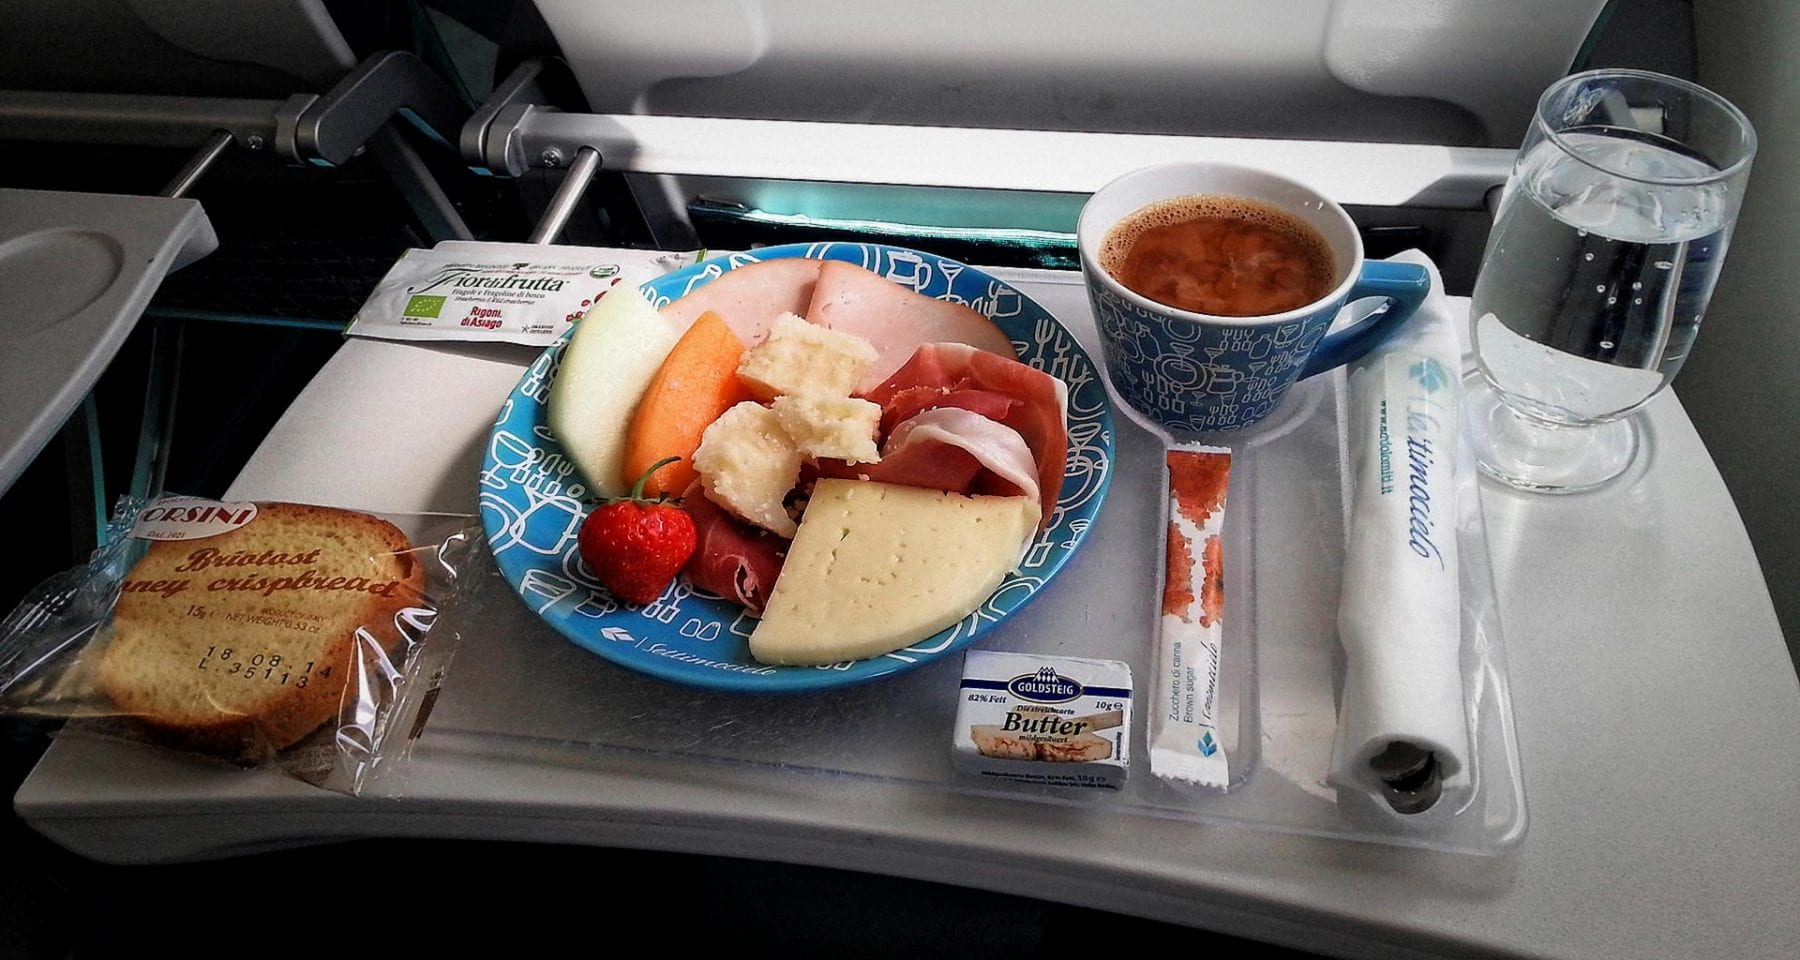 Air dolomiti business class meal, italian breakfast